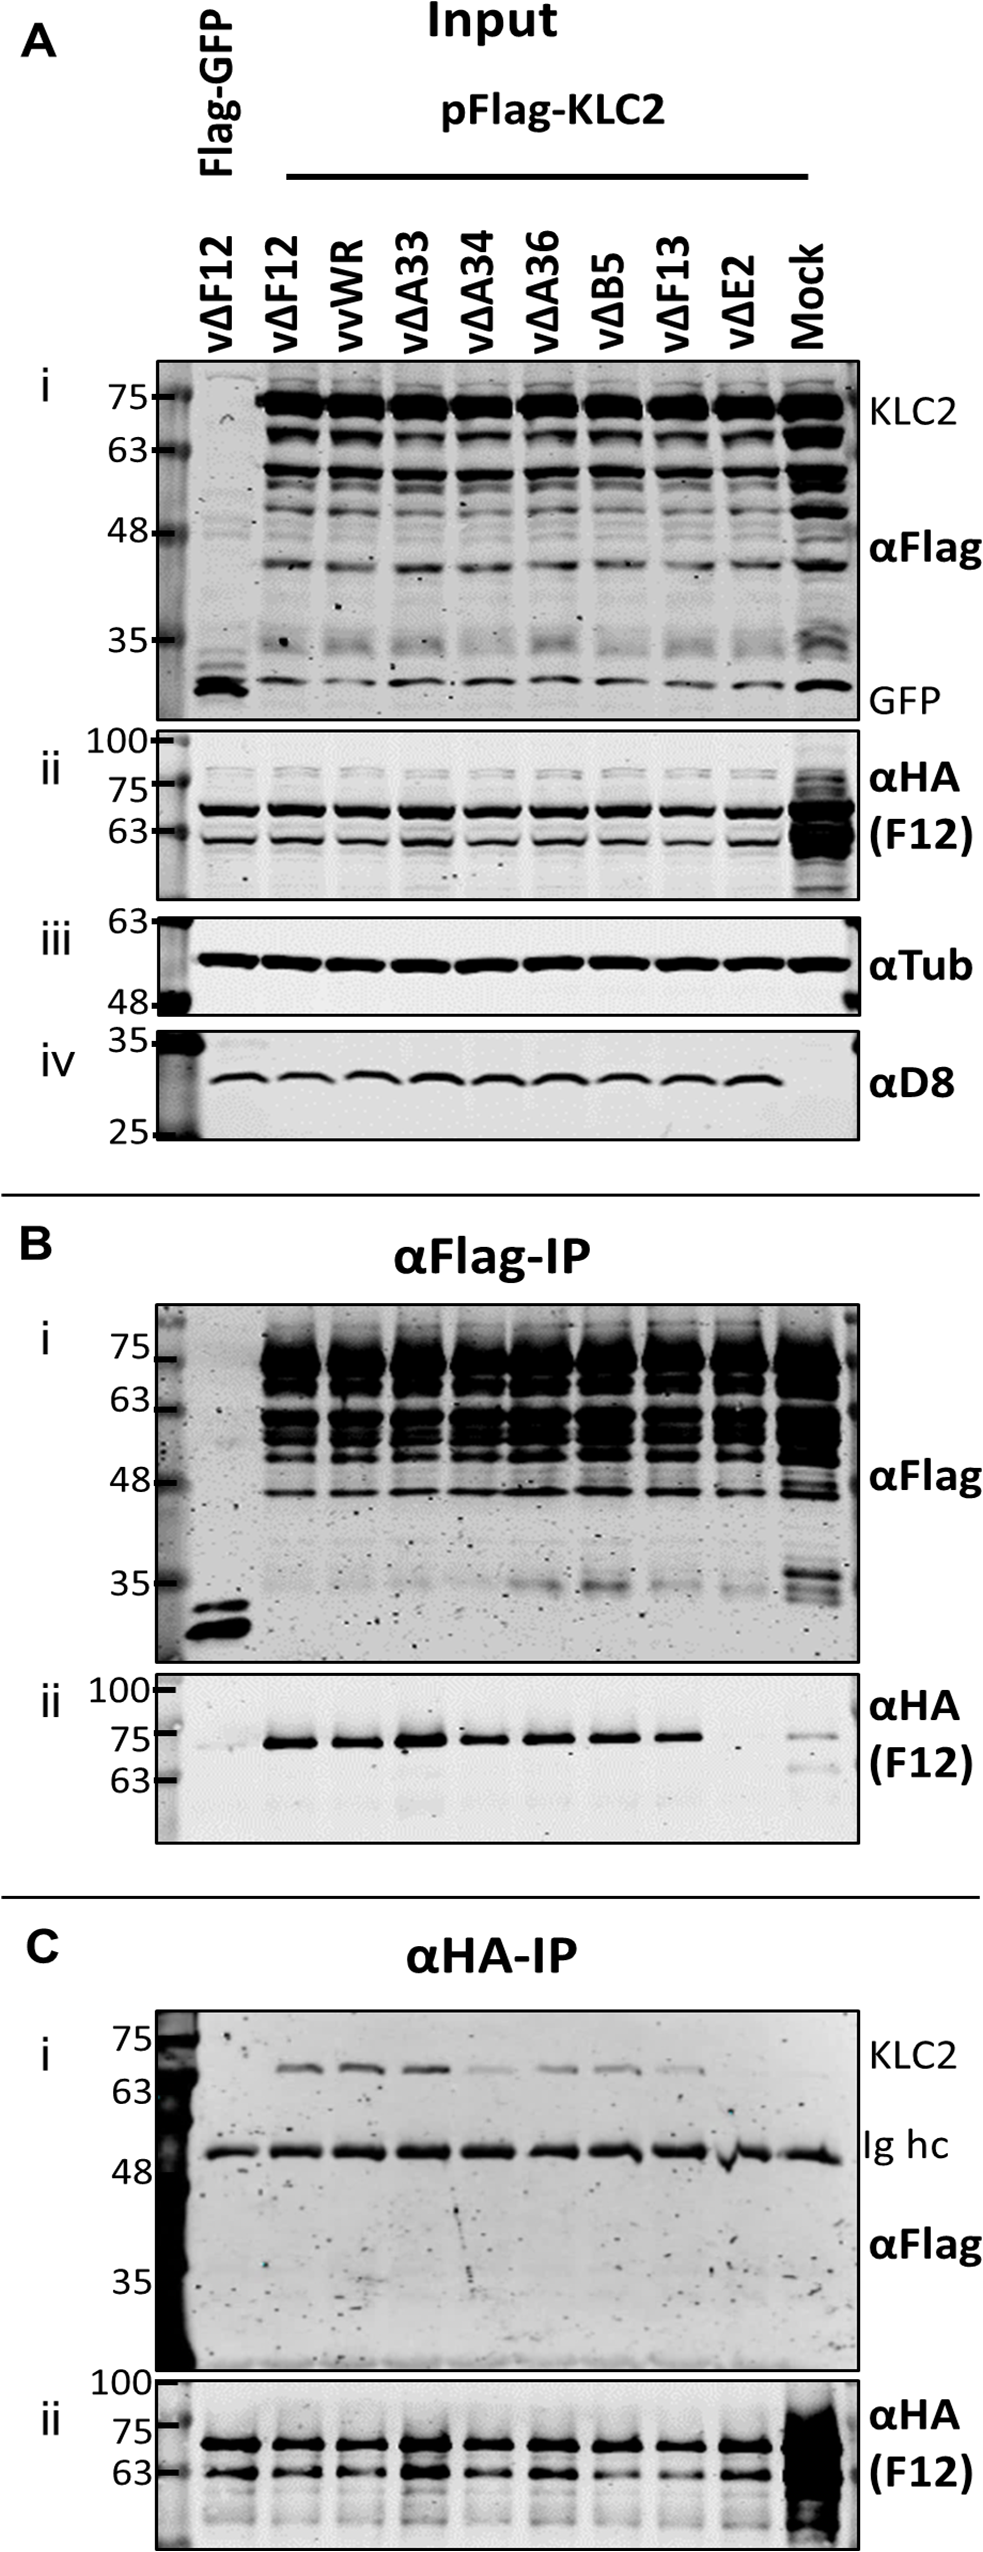 The F12/KLC2 interaction requires expression of E2.